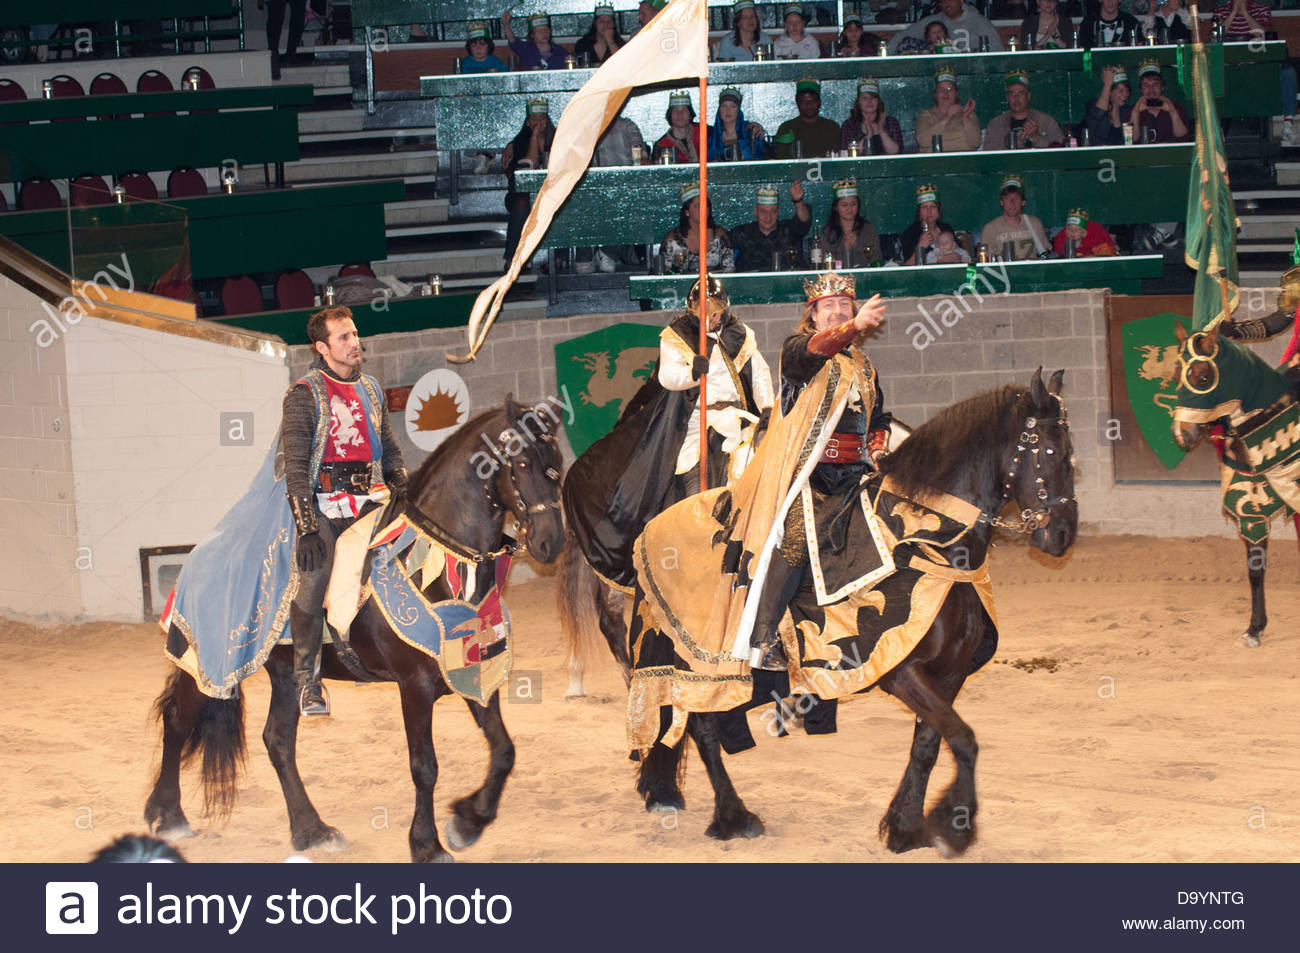 View of the Medieval Times Restaurant Tournament - Stock Image